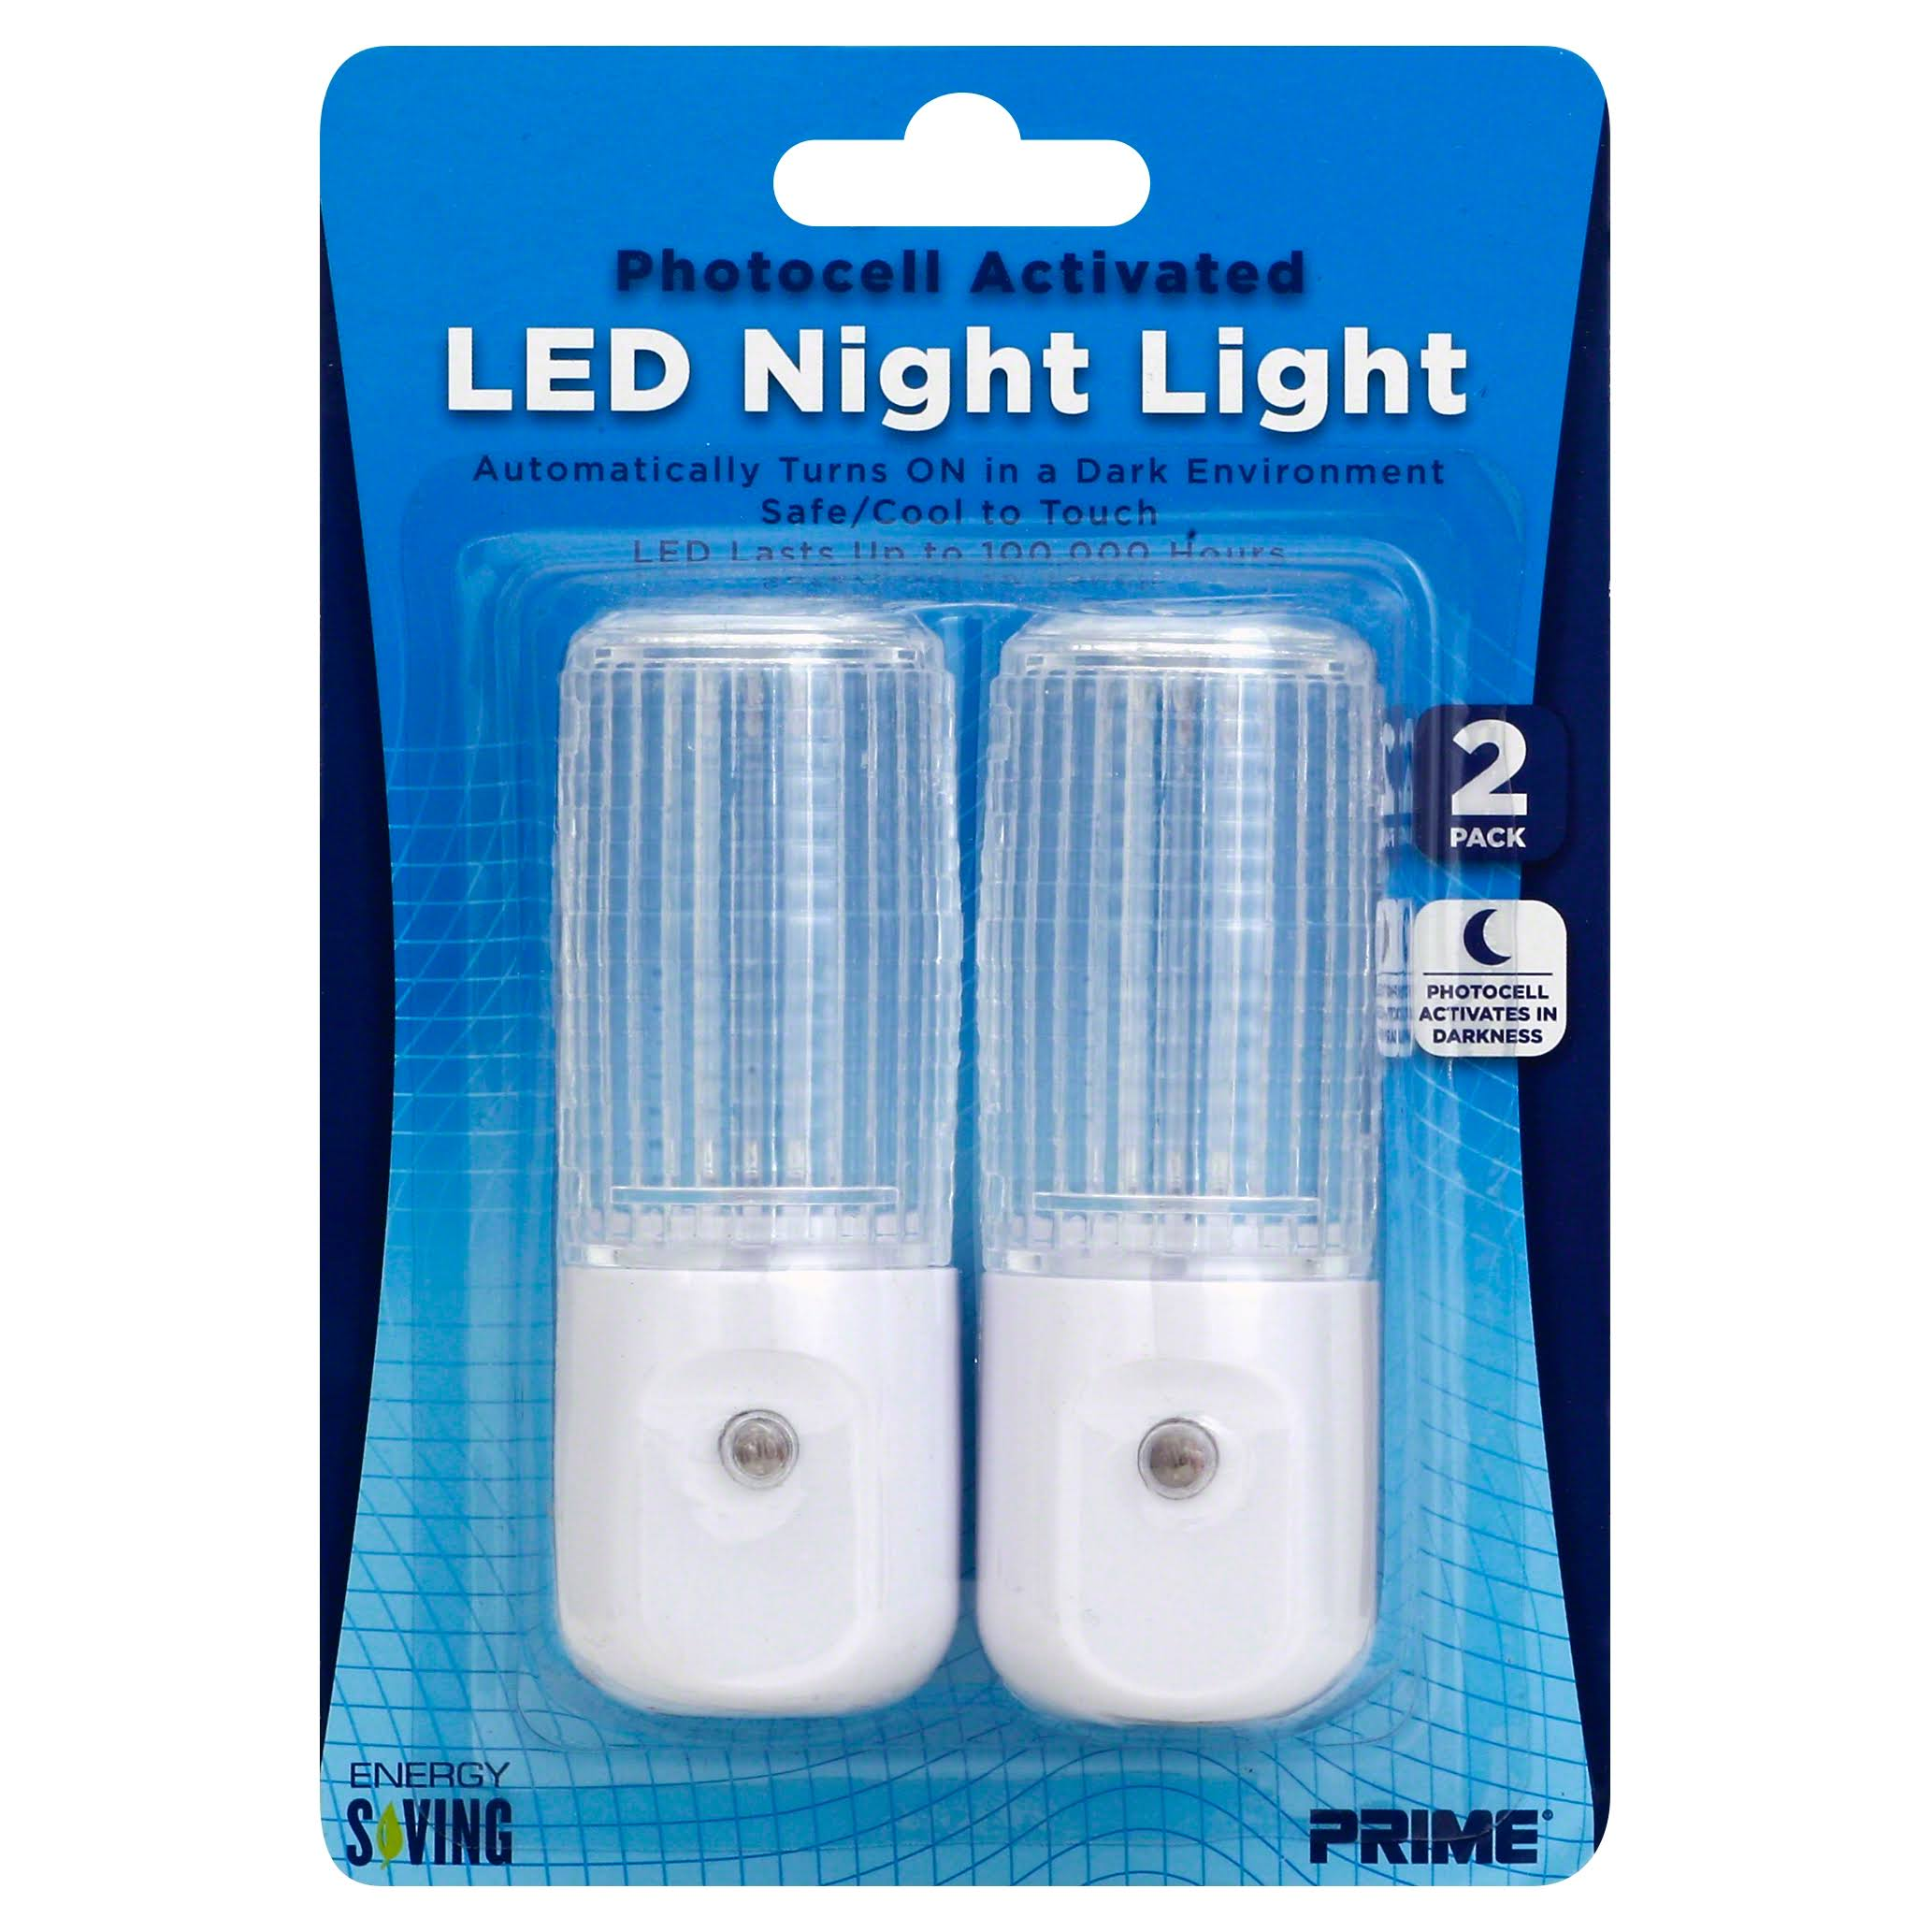 Prime Wire and Cable LED Night Light - Photocell Activated, 2 Pack